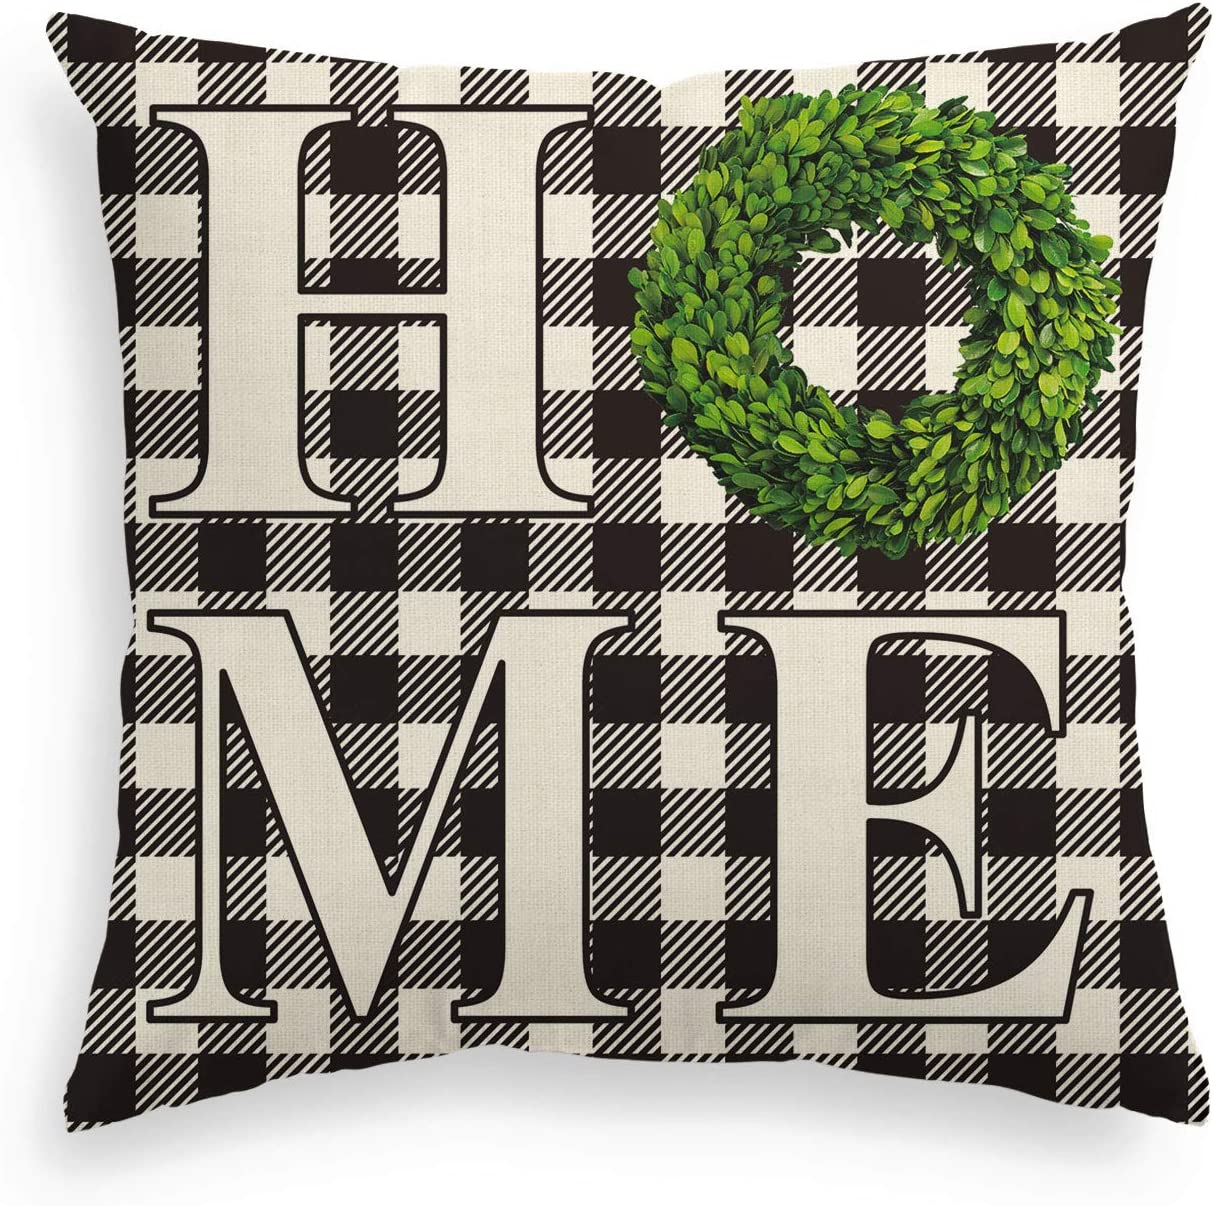 AVOIN Boxwood Wreath Home Throw Pillow Cover, Fall Thanksgiving Easter Buffalo Check Plaid 18 x 18 Inch Farmhouse Cushion Case Decoration for Sofa Couch